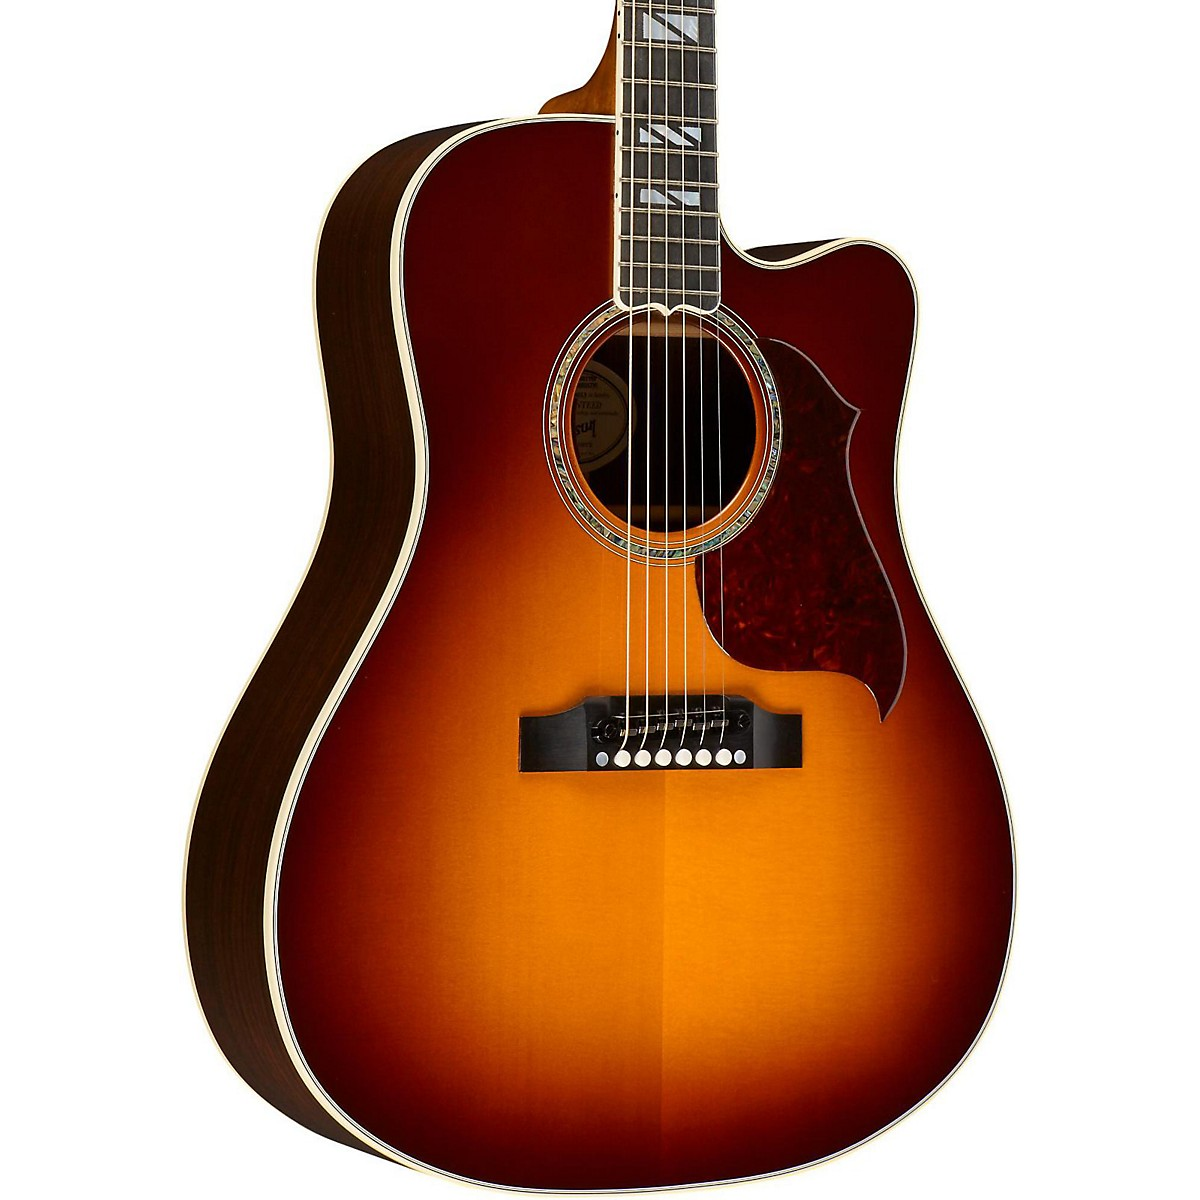 Gibson 2016 Songwriter Progressive Square Shoulder Cutaway Dreadnought Acoustic-Electric Guitar